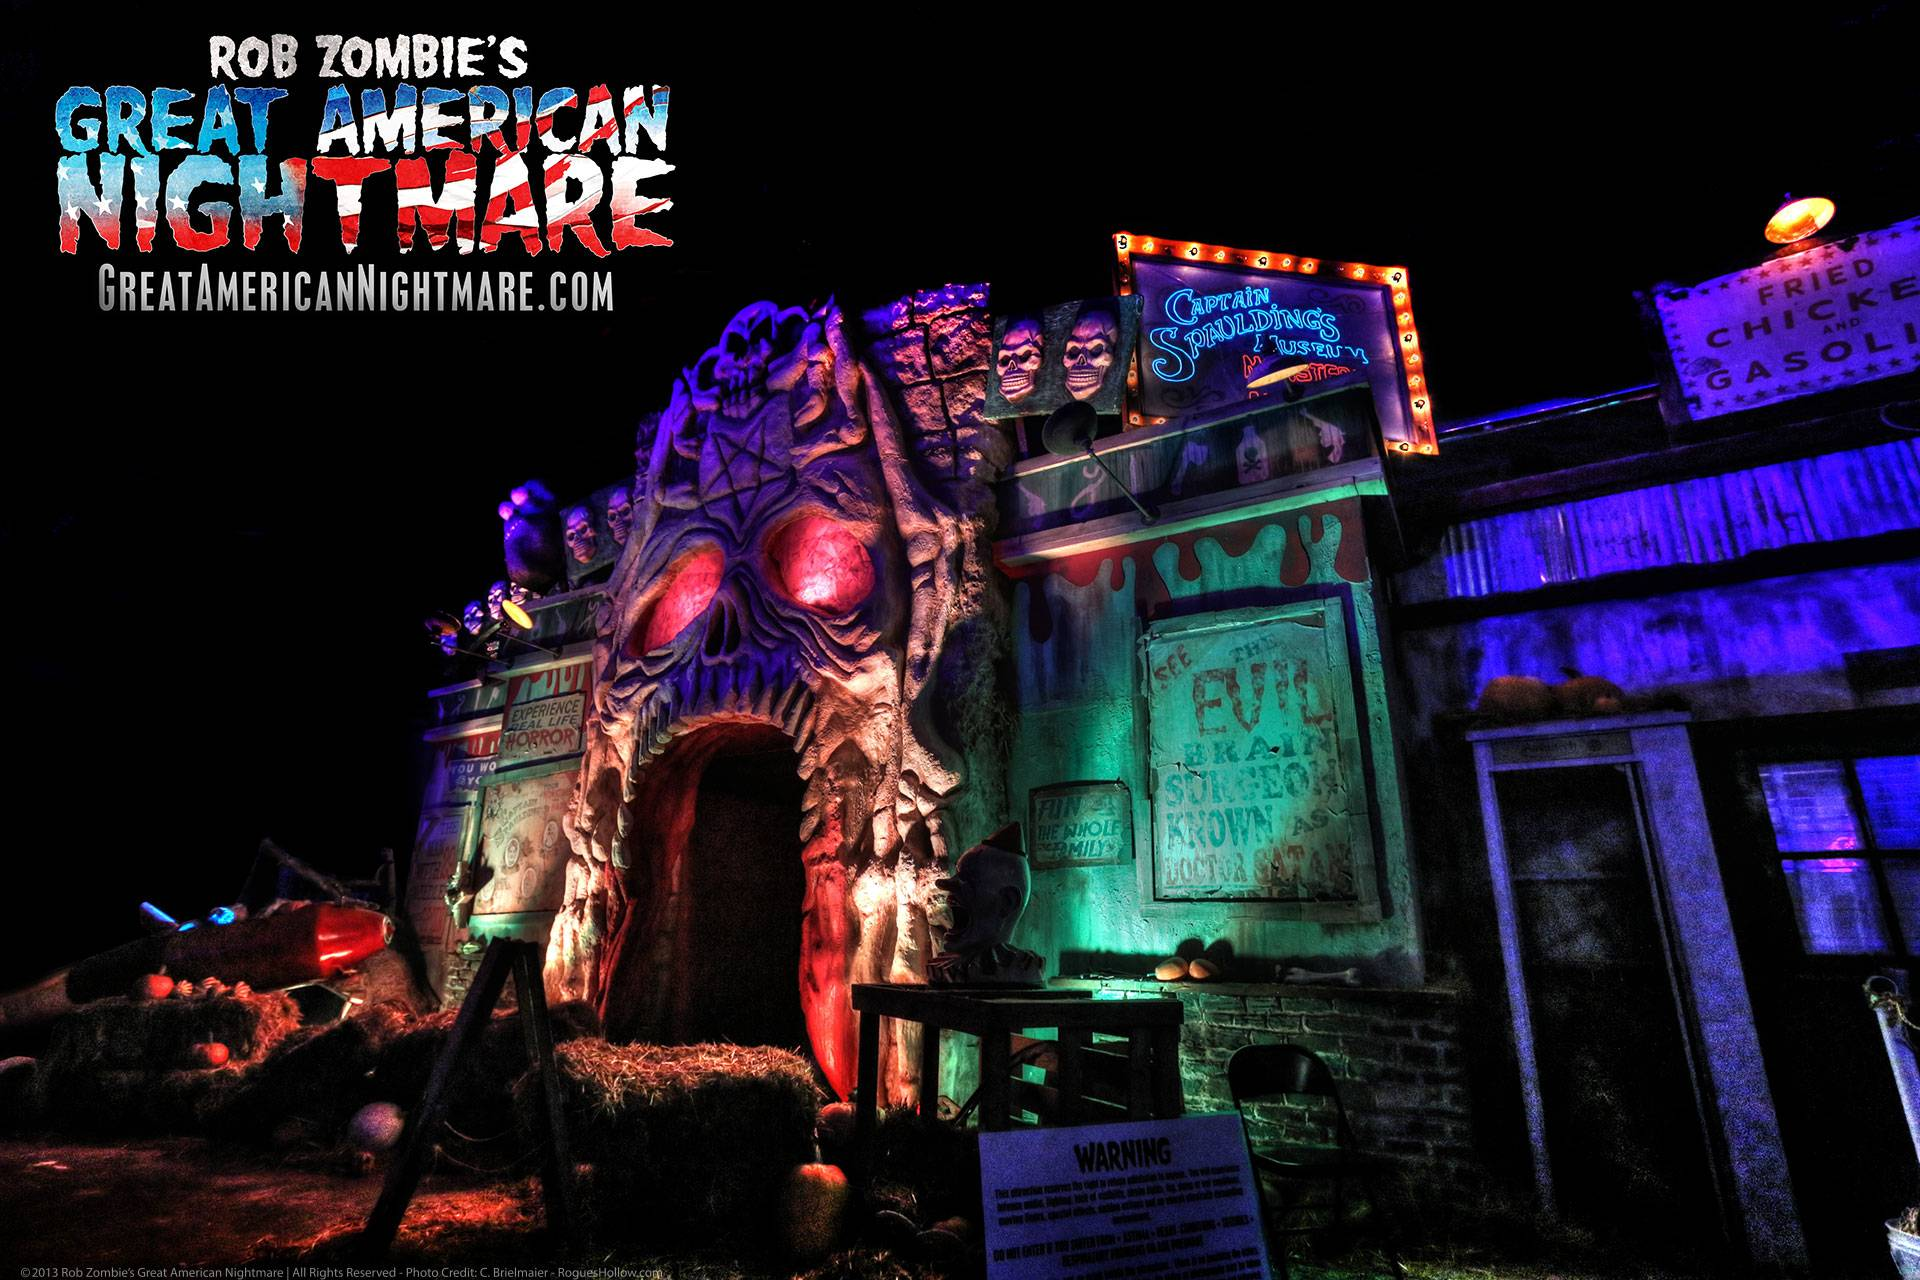 The macabre entry into Rob Zombie's Great American Nightmare, a unique haunted attraction headed to Chicagoland this Halloween season.Rob Zombie's Great American Nightmare